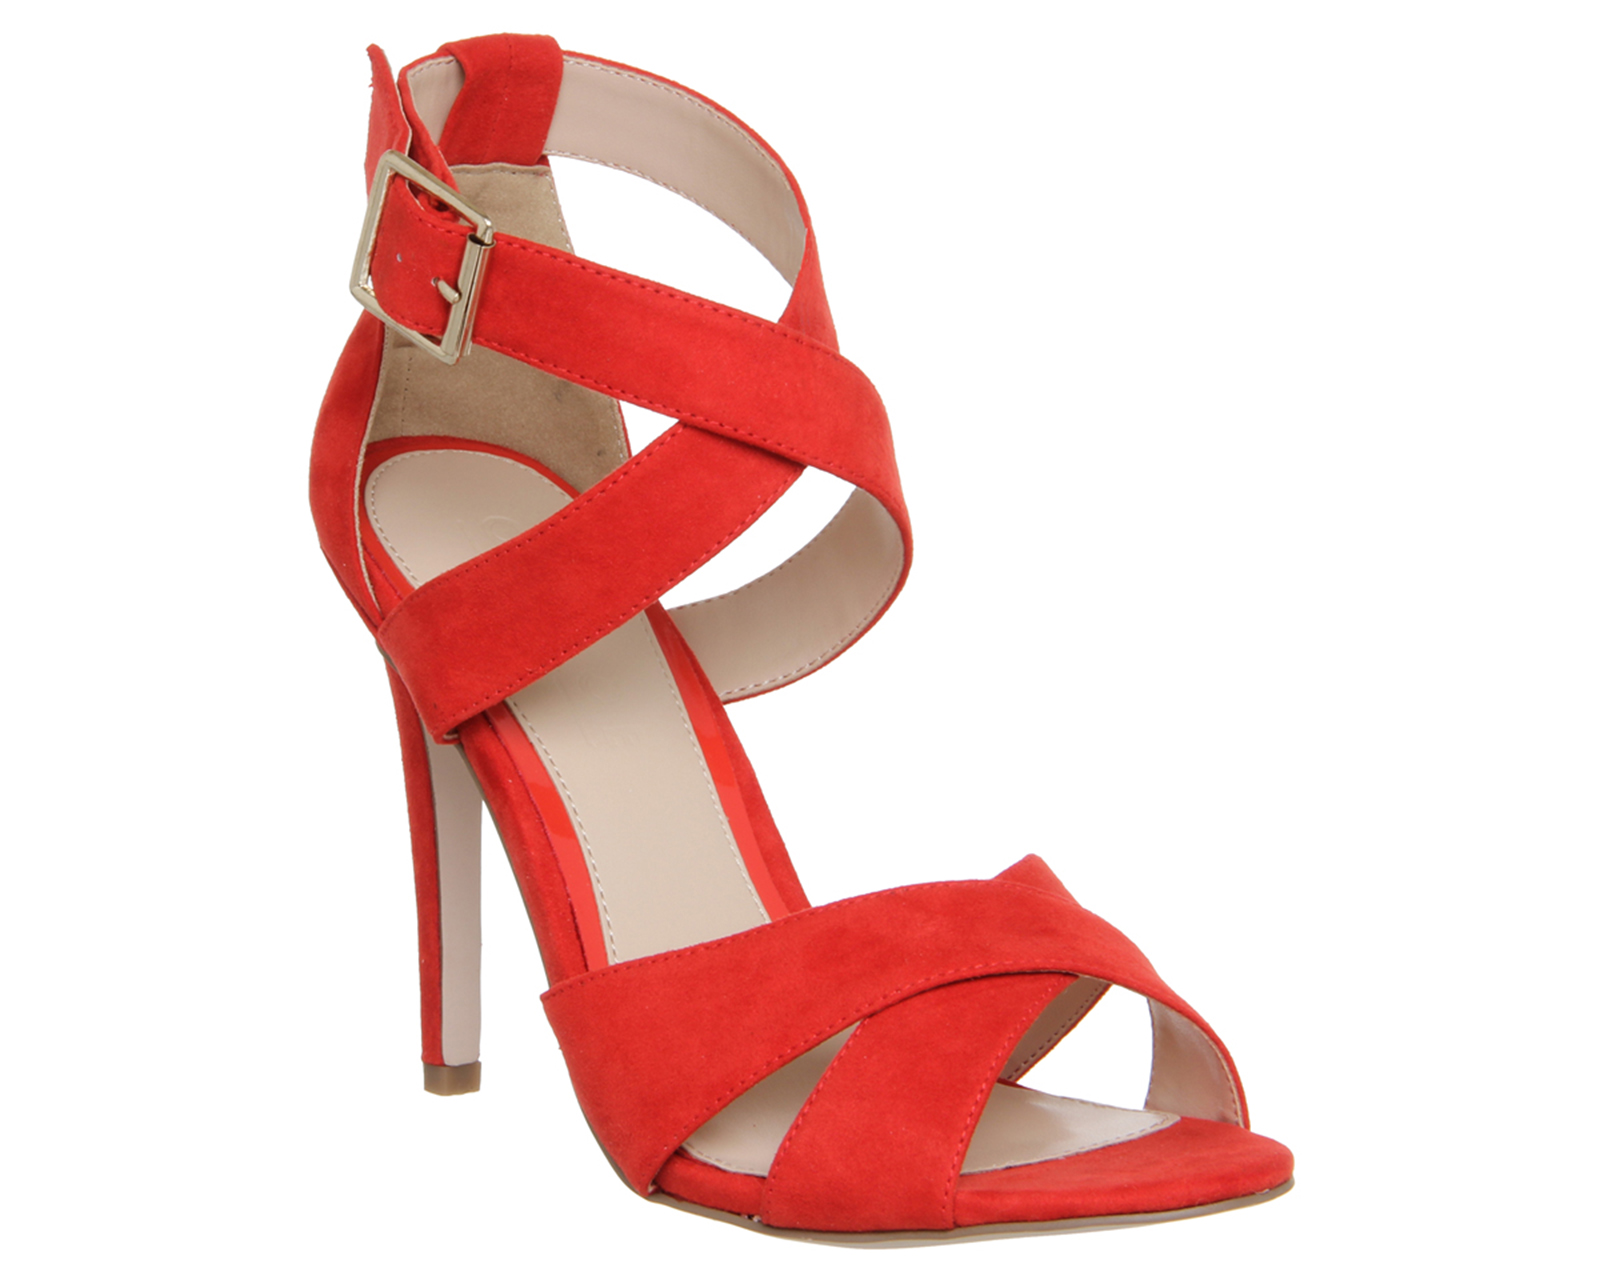 Red High Heels With Strap A92cylaU